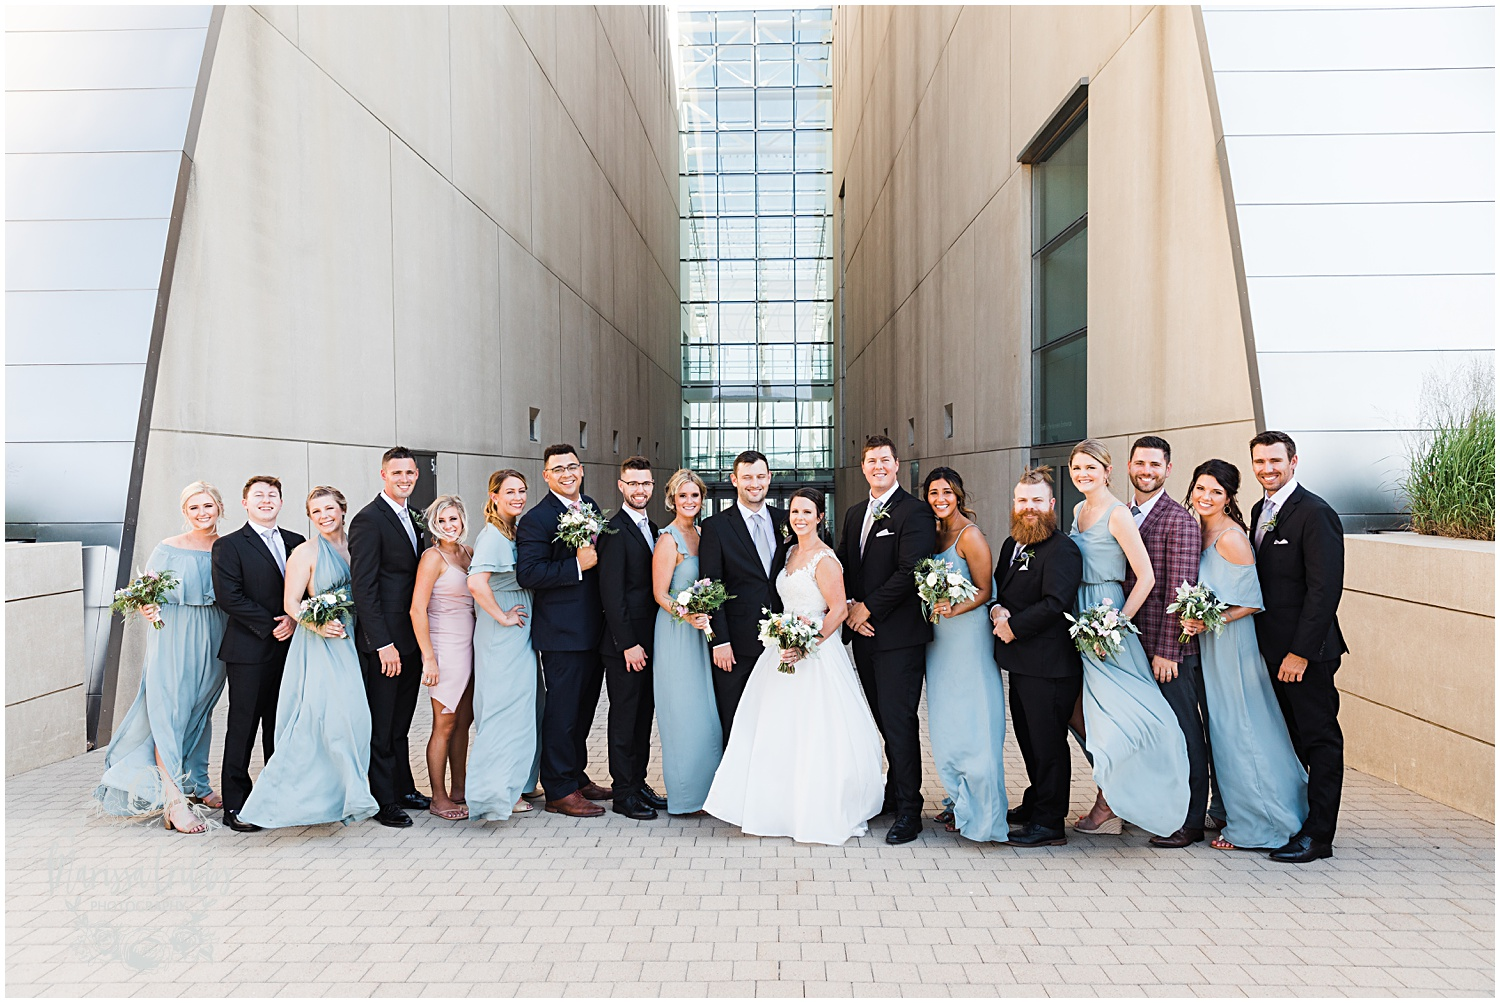 KELLY & MITCH MARRIED BLOG | MARISSA CRIBBS PHOTOGRAPHY | THE EVERLY EVENT SPACE_8881.jpg